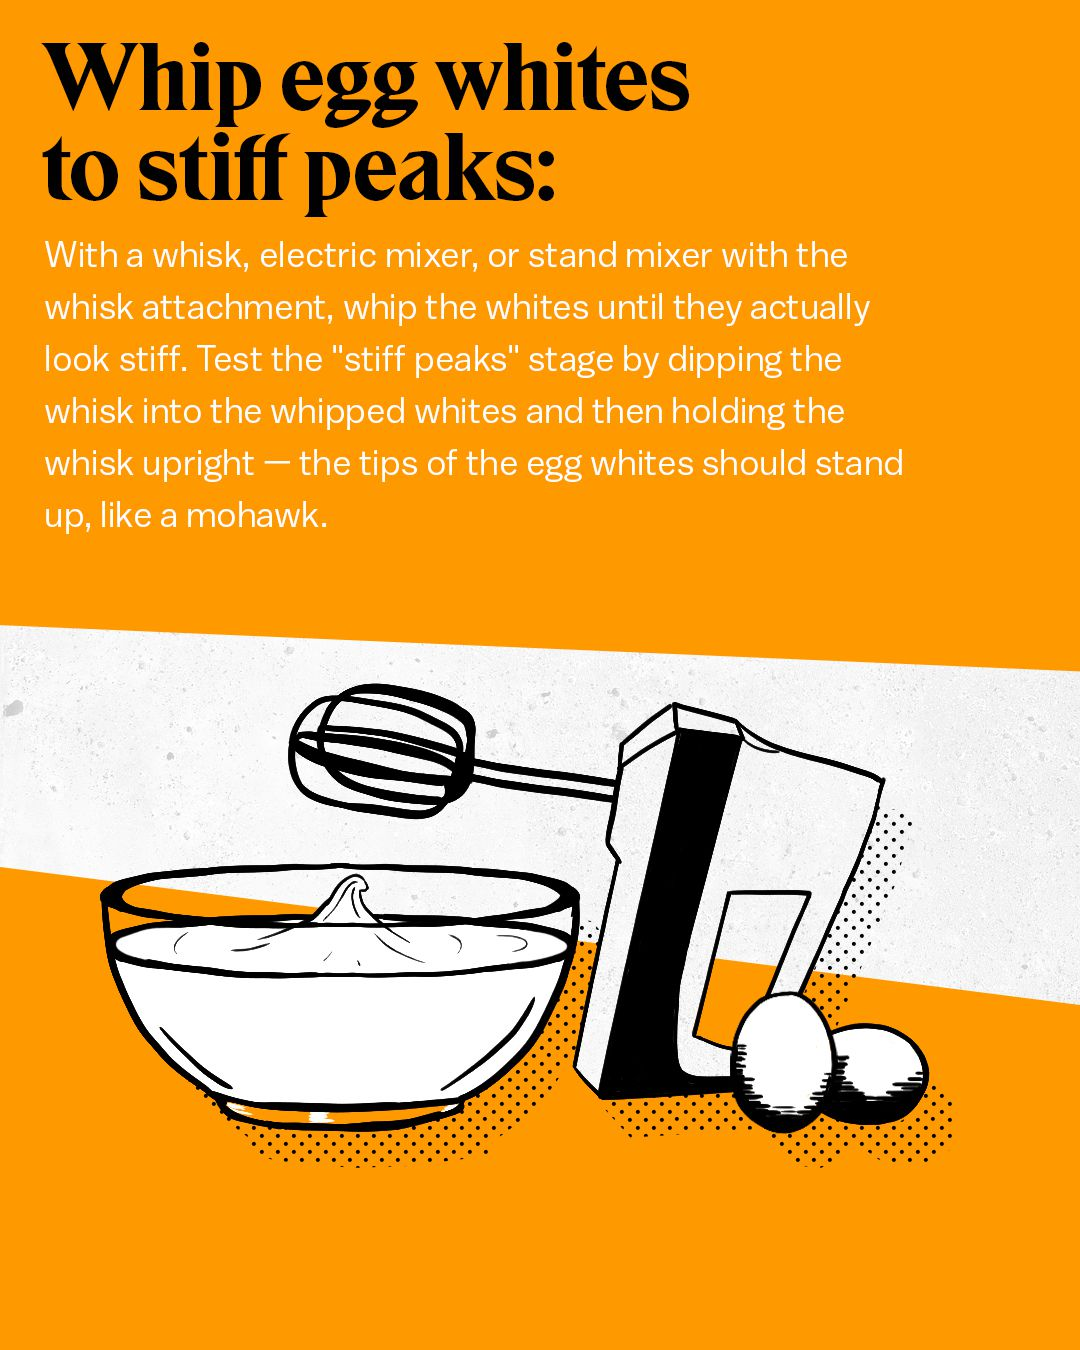 """Whip egg whites to stiff peaks: With a whisk, electric mixer, or stand mixer with the whisk attachment, whip the whites until they actually look stiff. Test the """"stiff peaks"""" stage by dipping the whisk into the whipped whites and then holding the whisk up"""